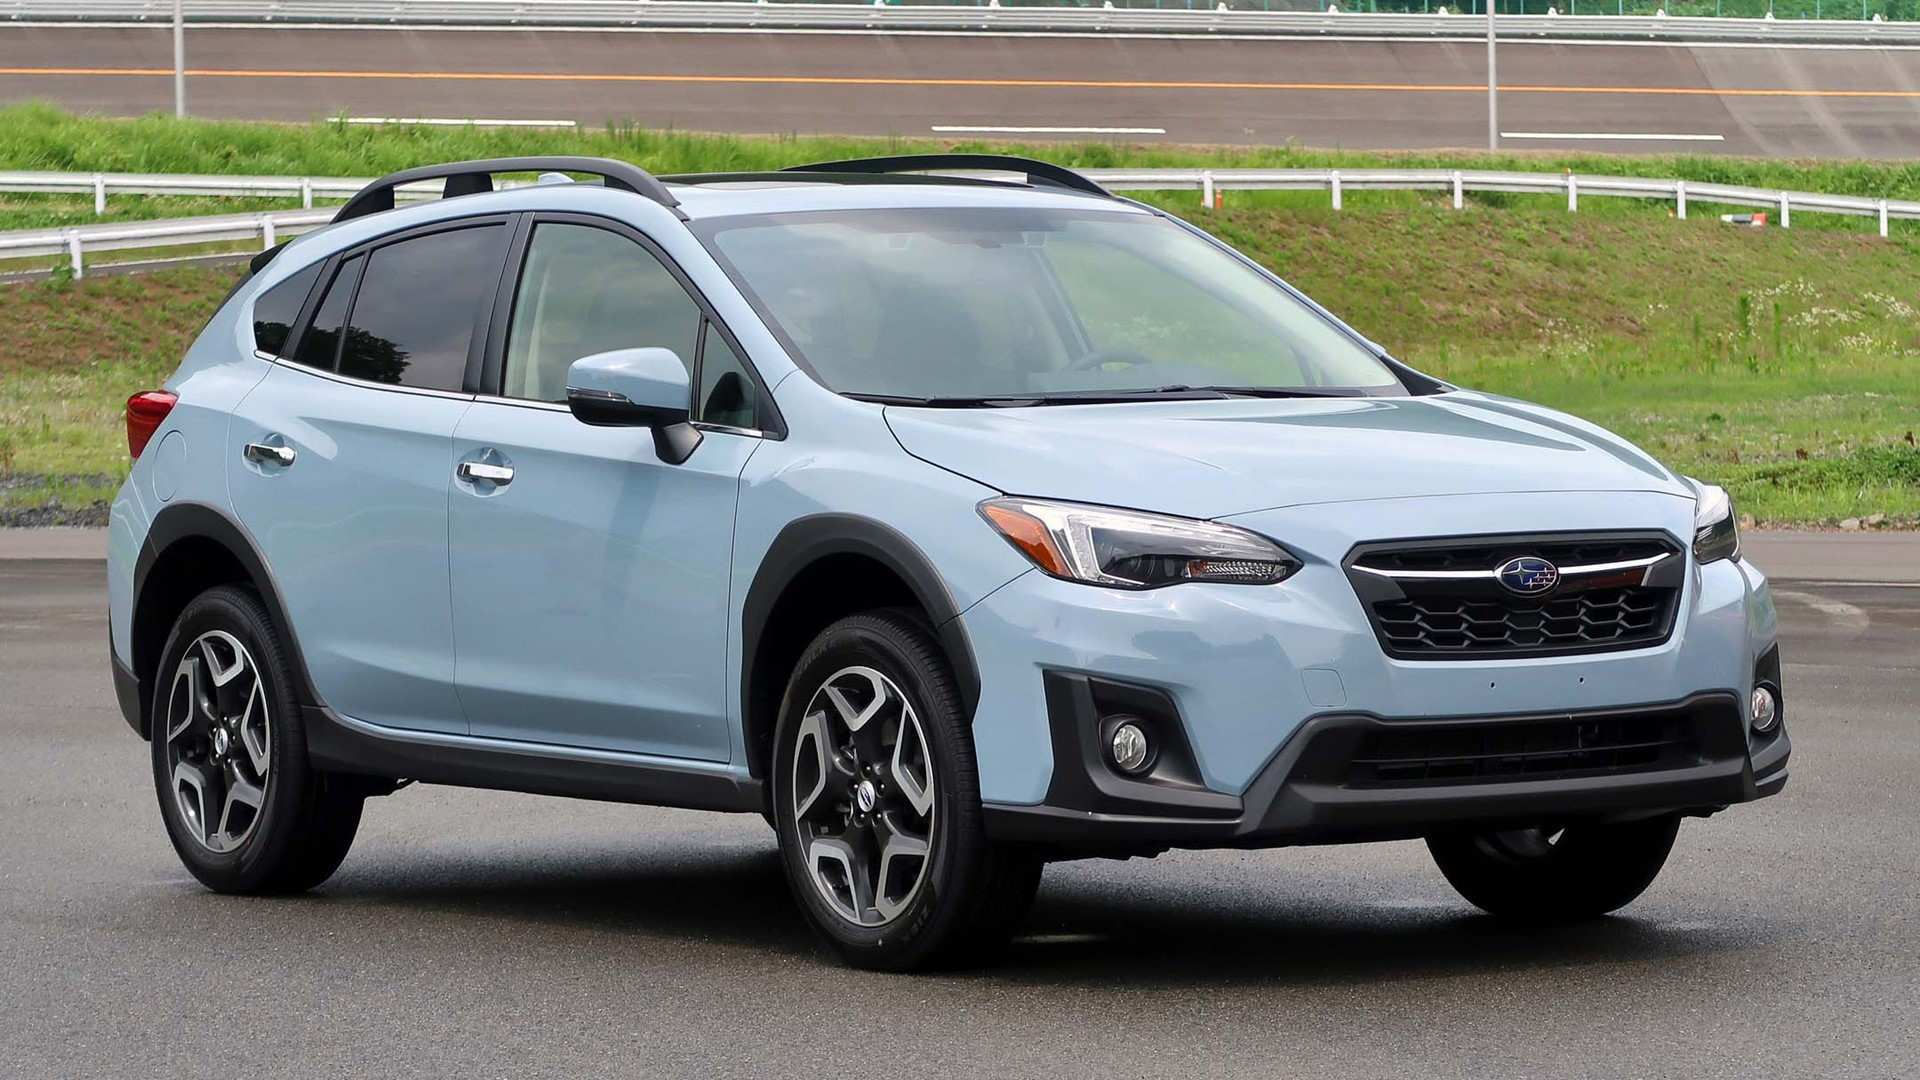 12 New Subaru Crosstrek 2020 Model by Subaru Crosstrek 2020